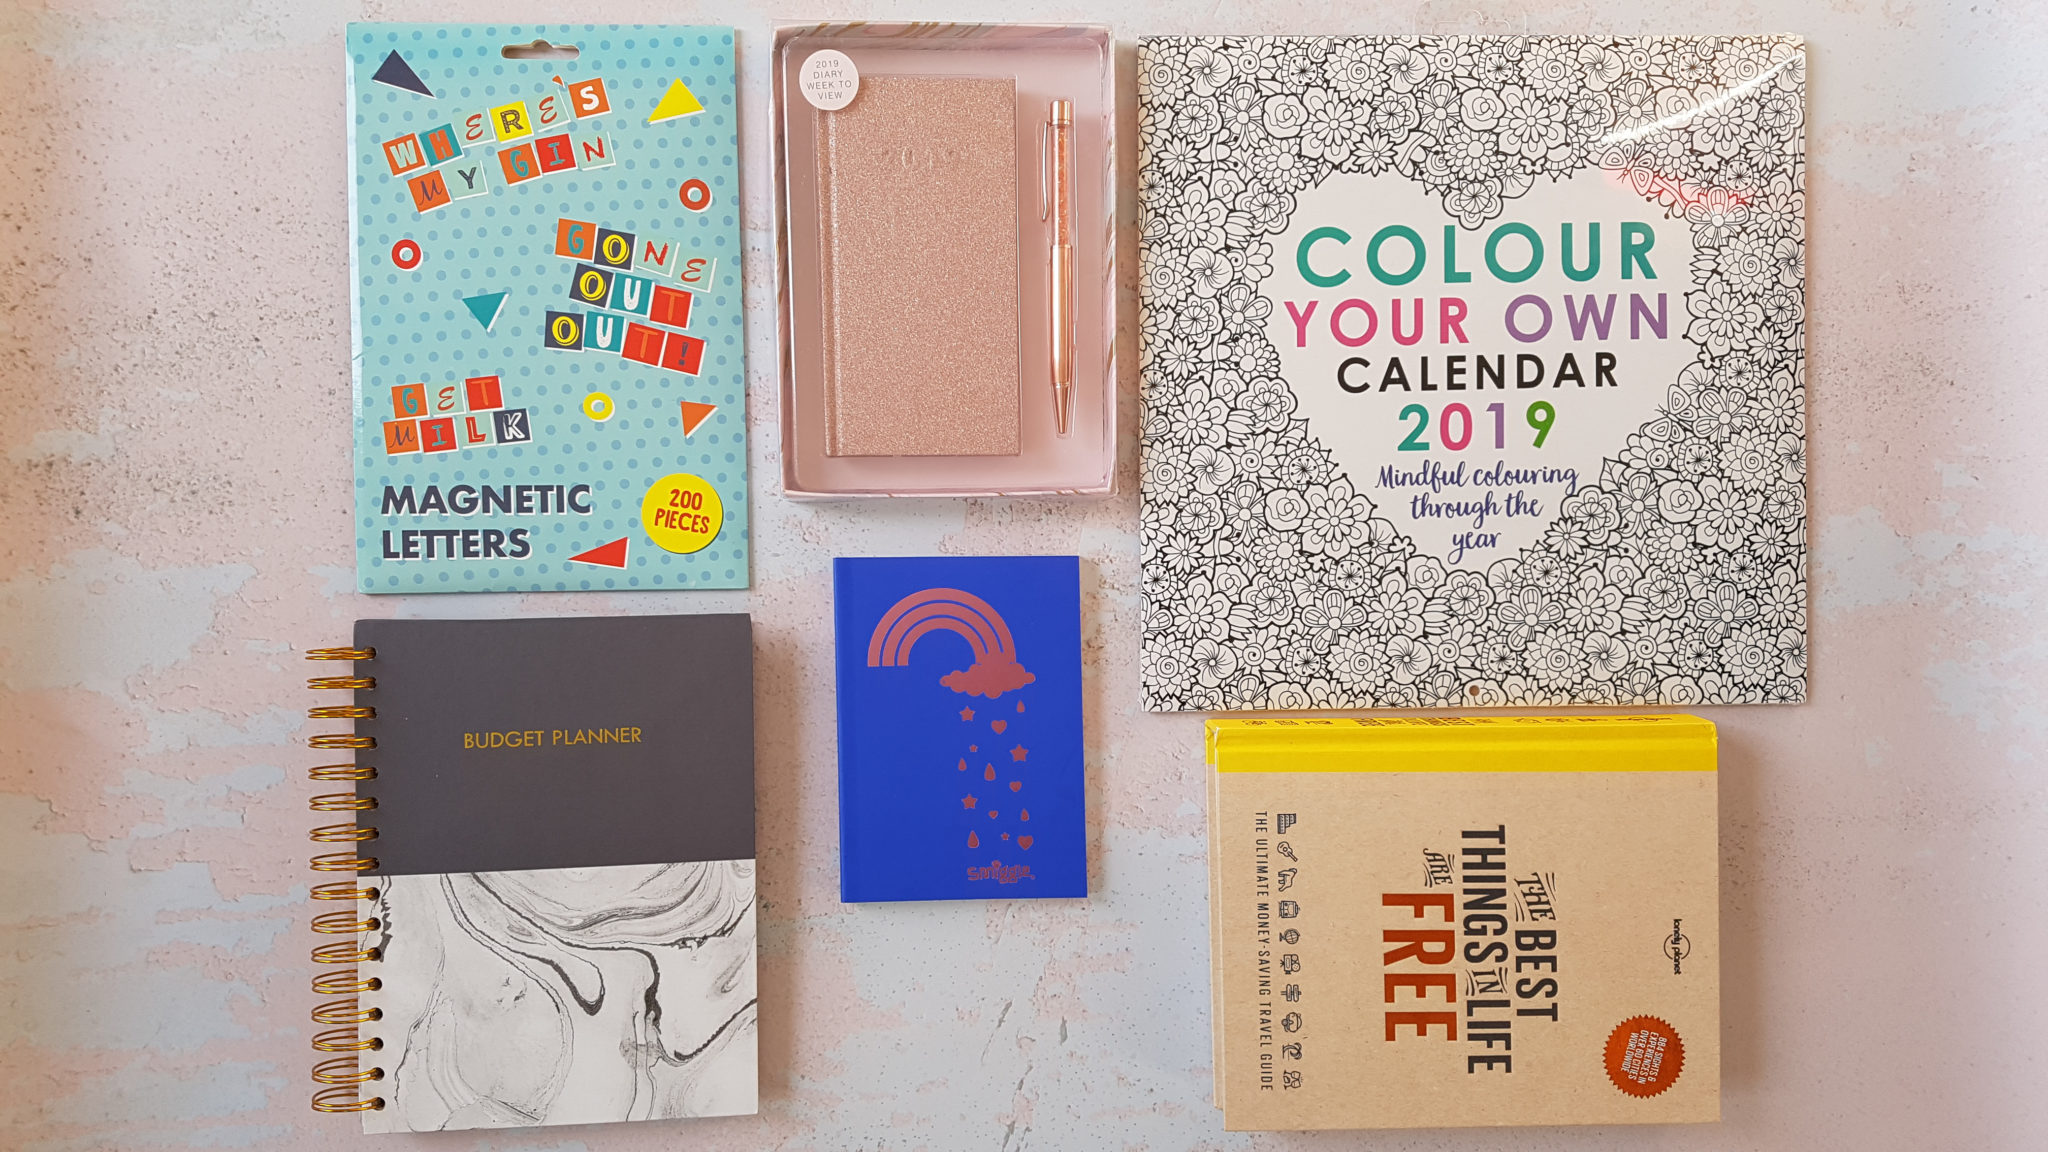 flatlay of items including a calendar, notbooks, budget planner and diary